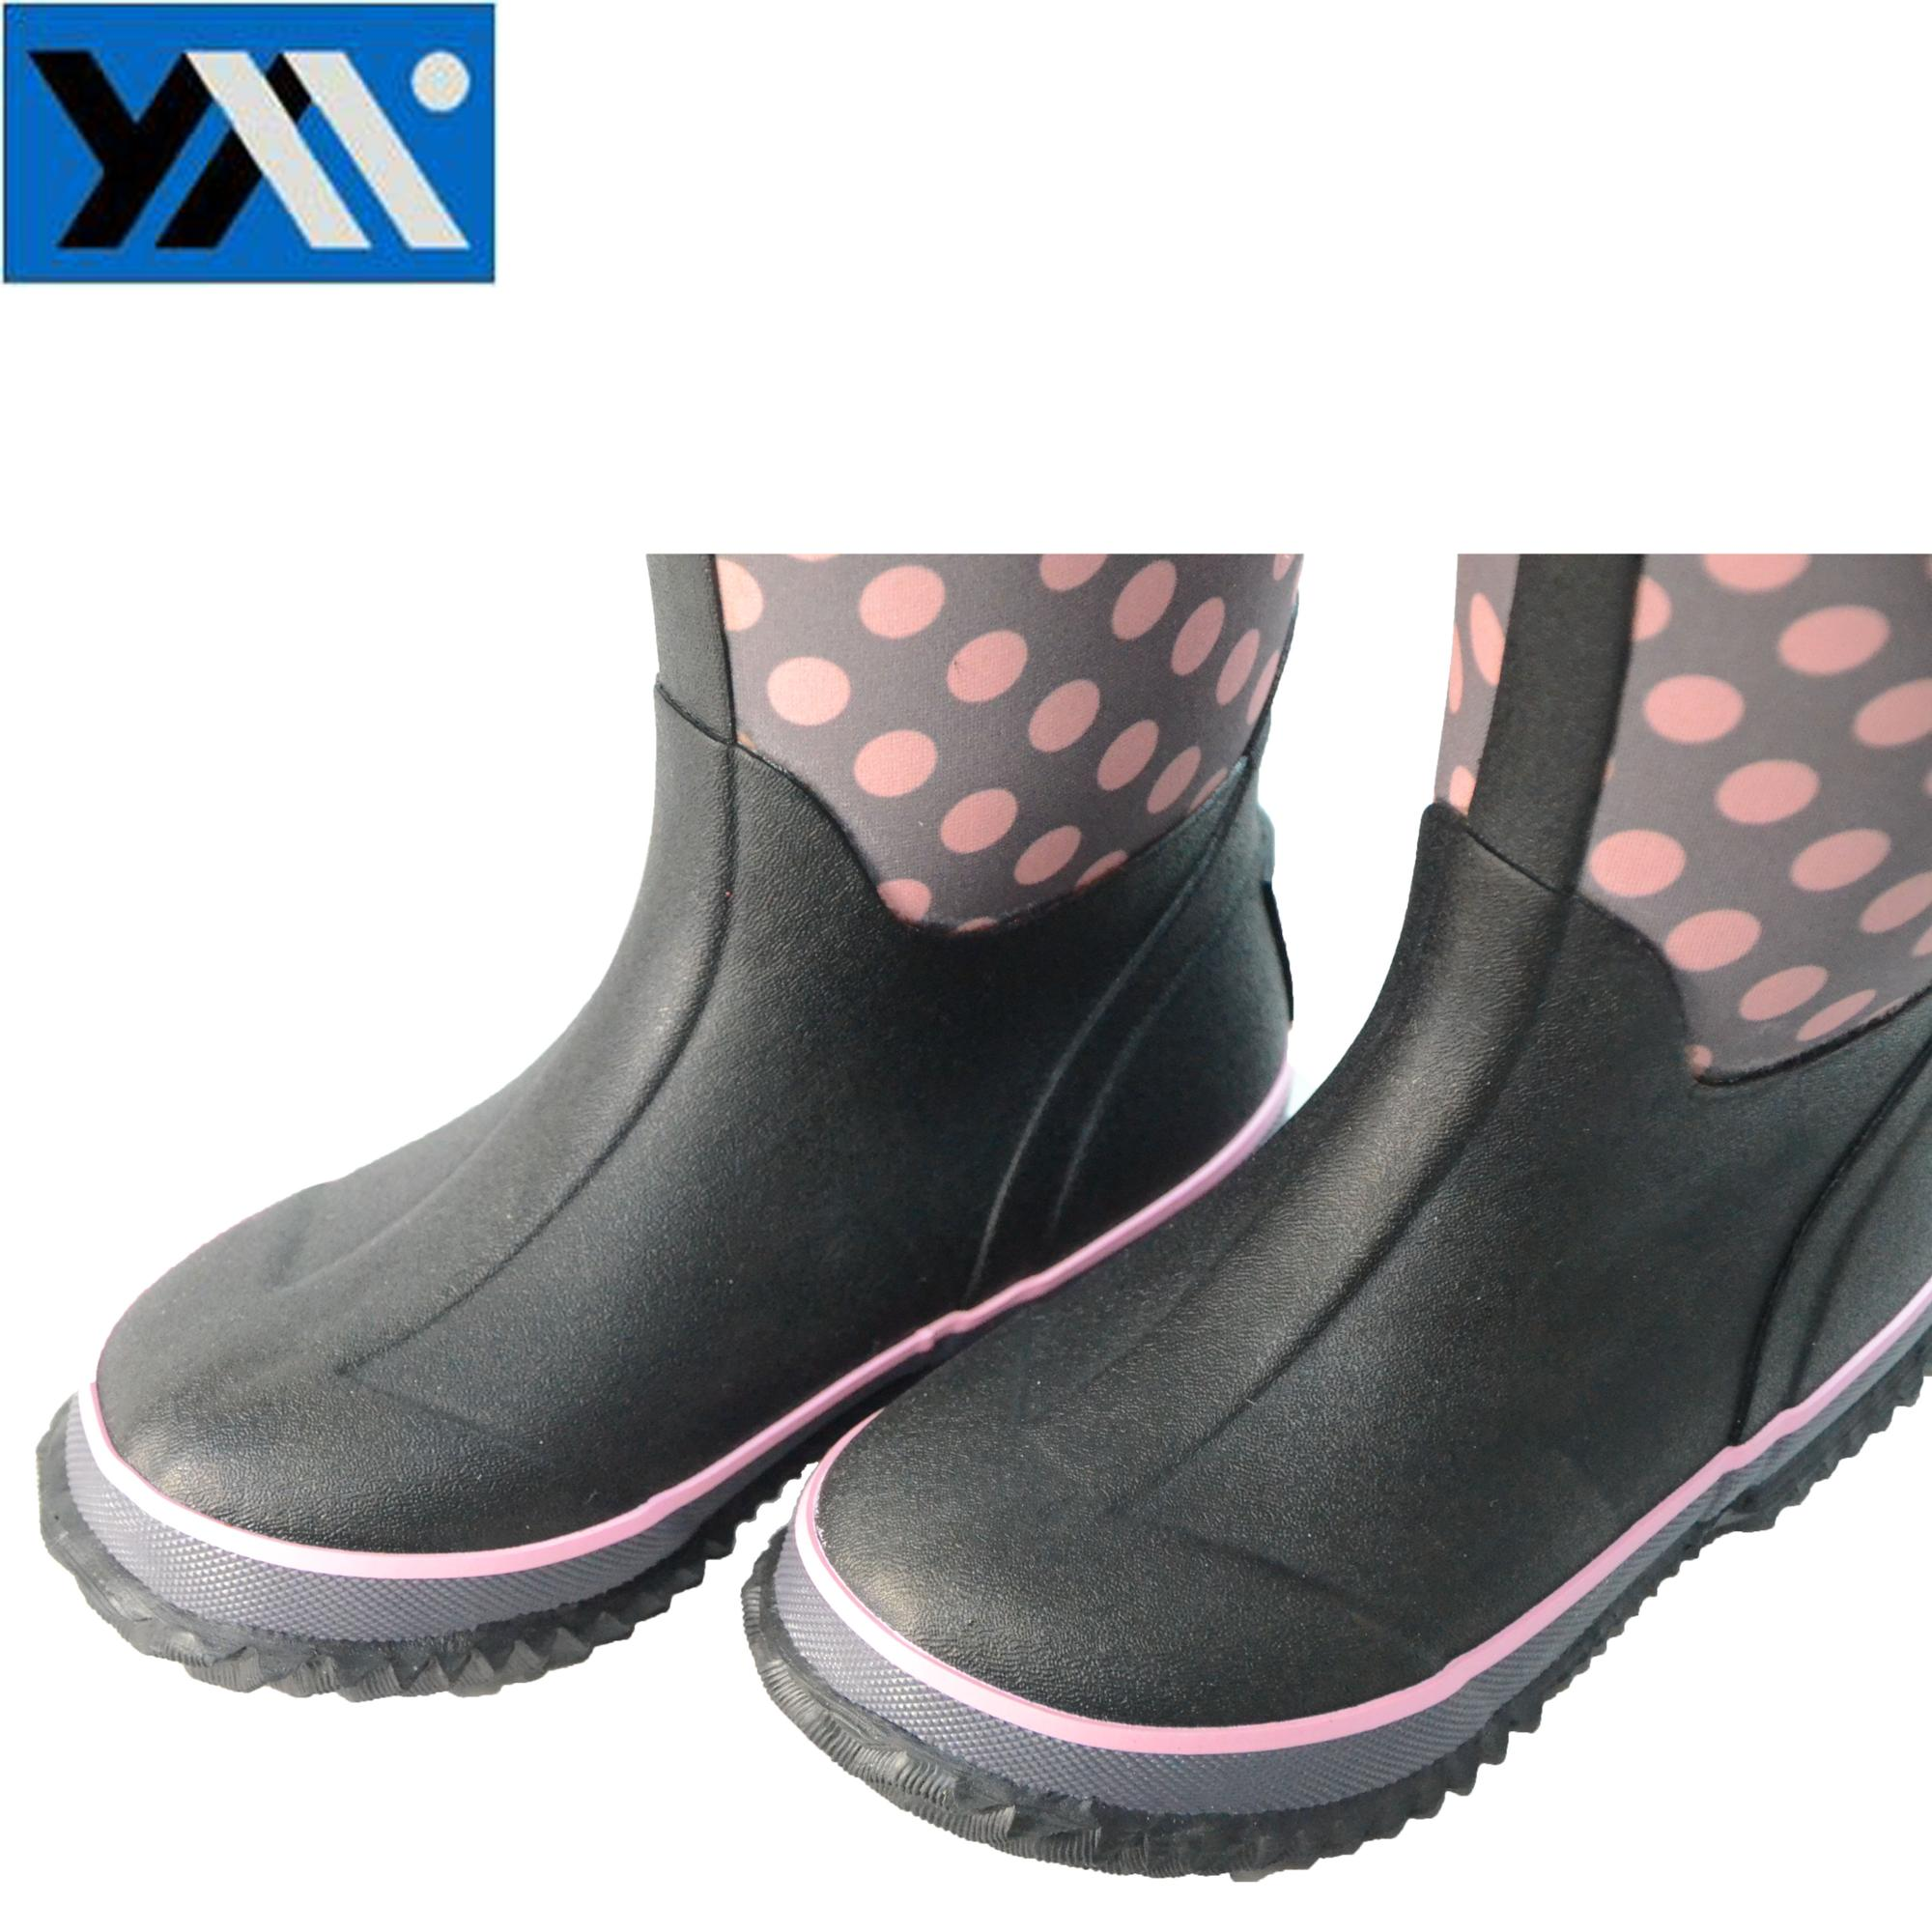 Best sell kids rainboots rain boots wholesale children rainboots